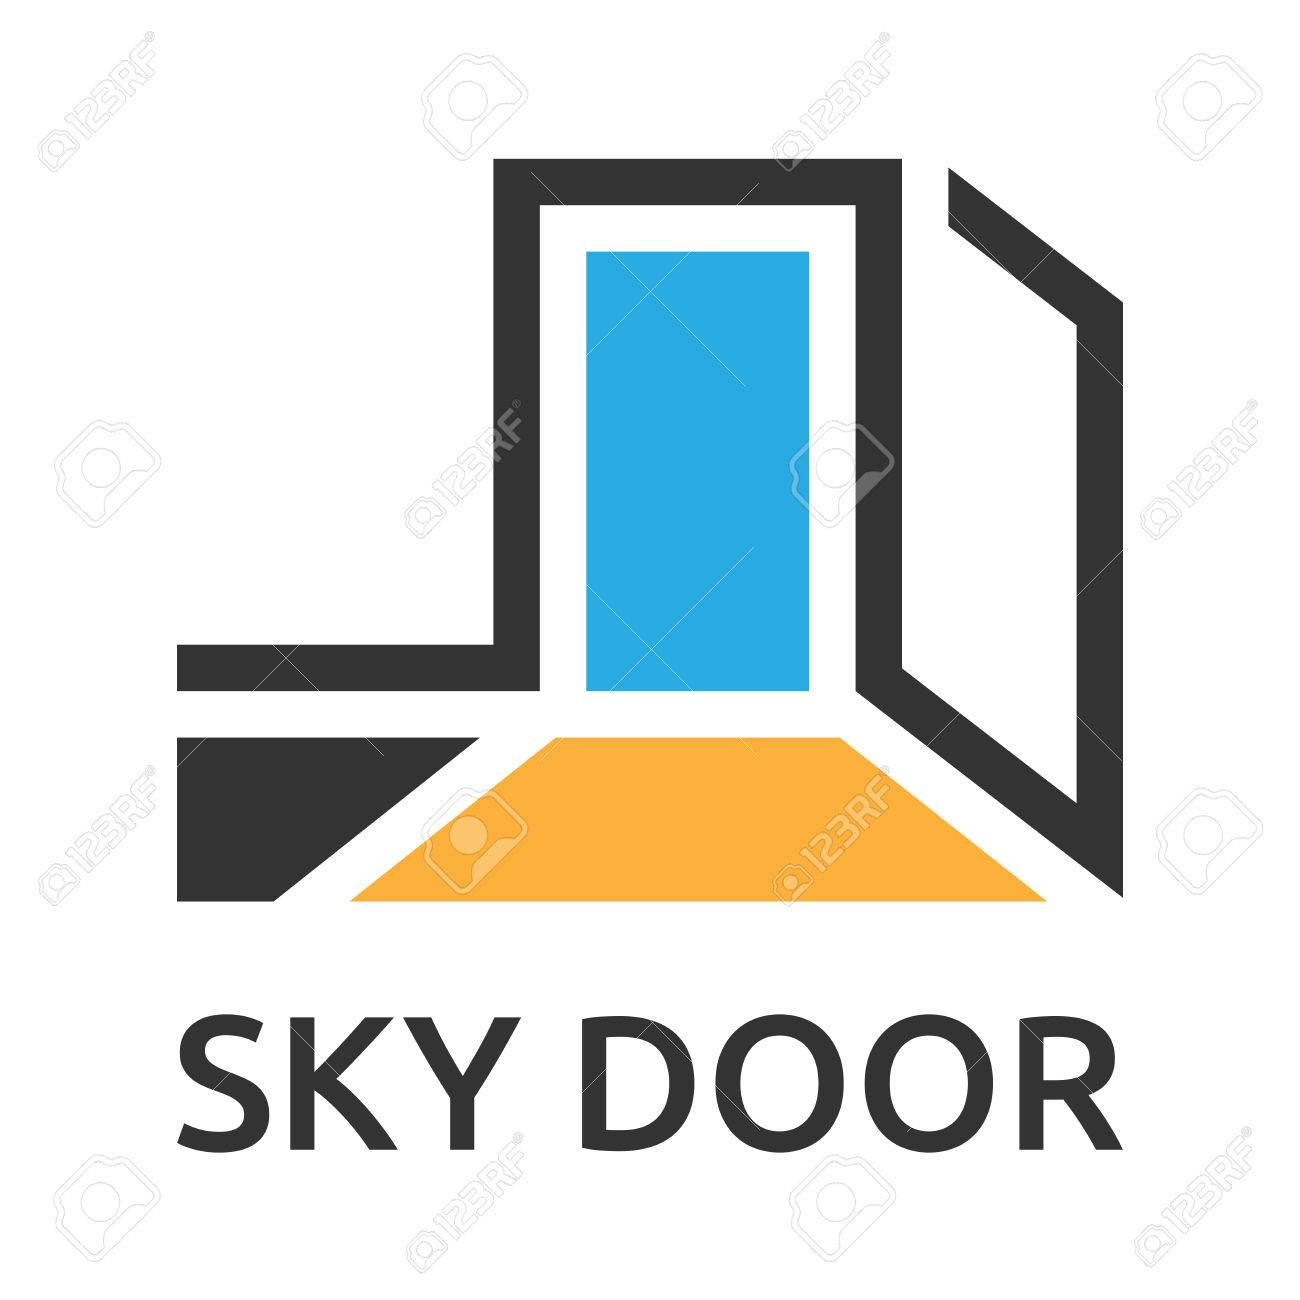 Abstract stylized door to sky logo template. EPS 10 vector illustration, no transparency - 45092383